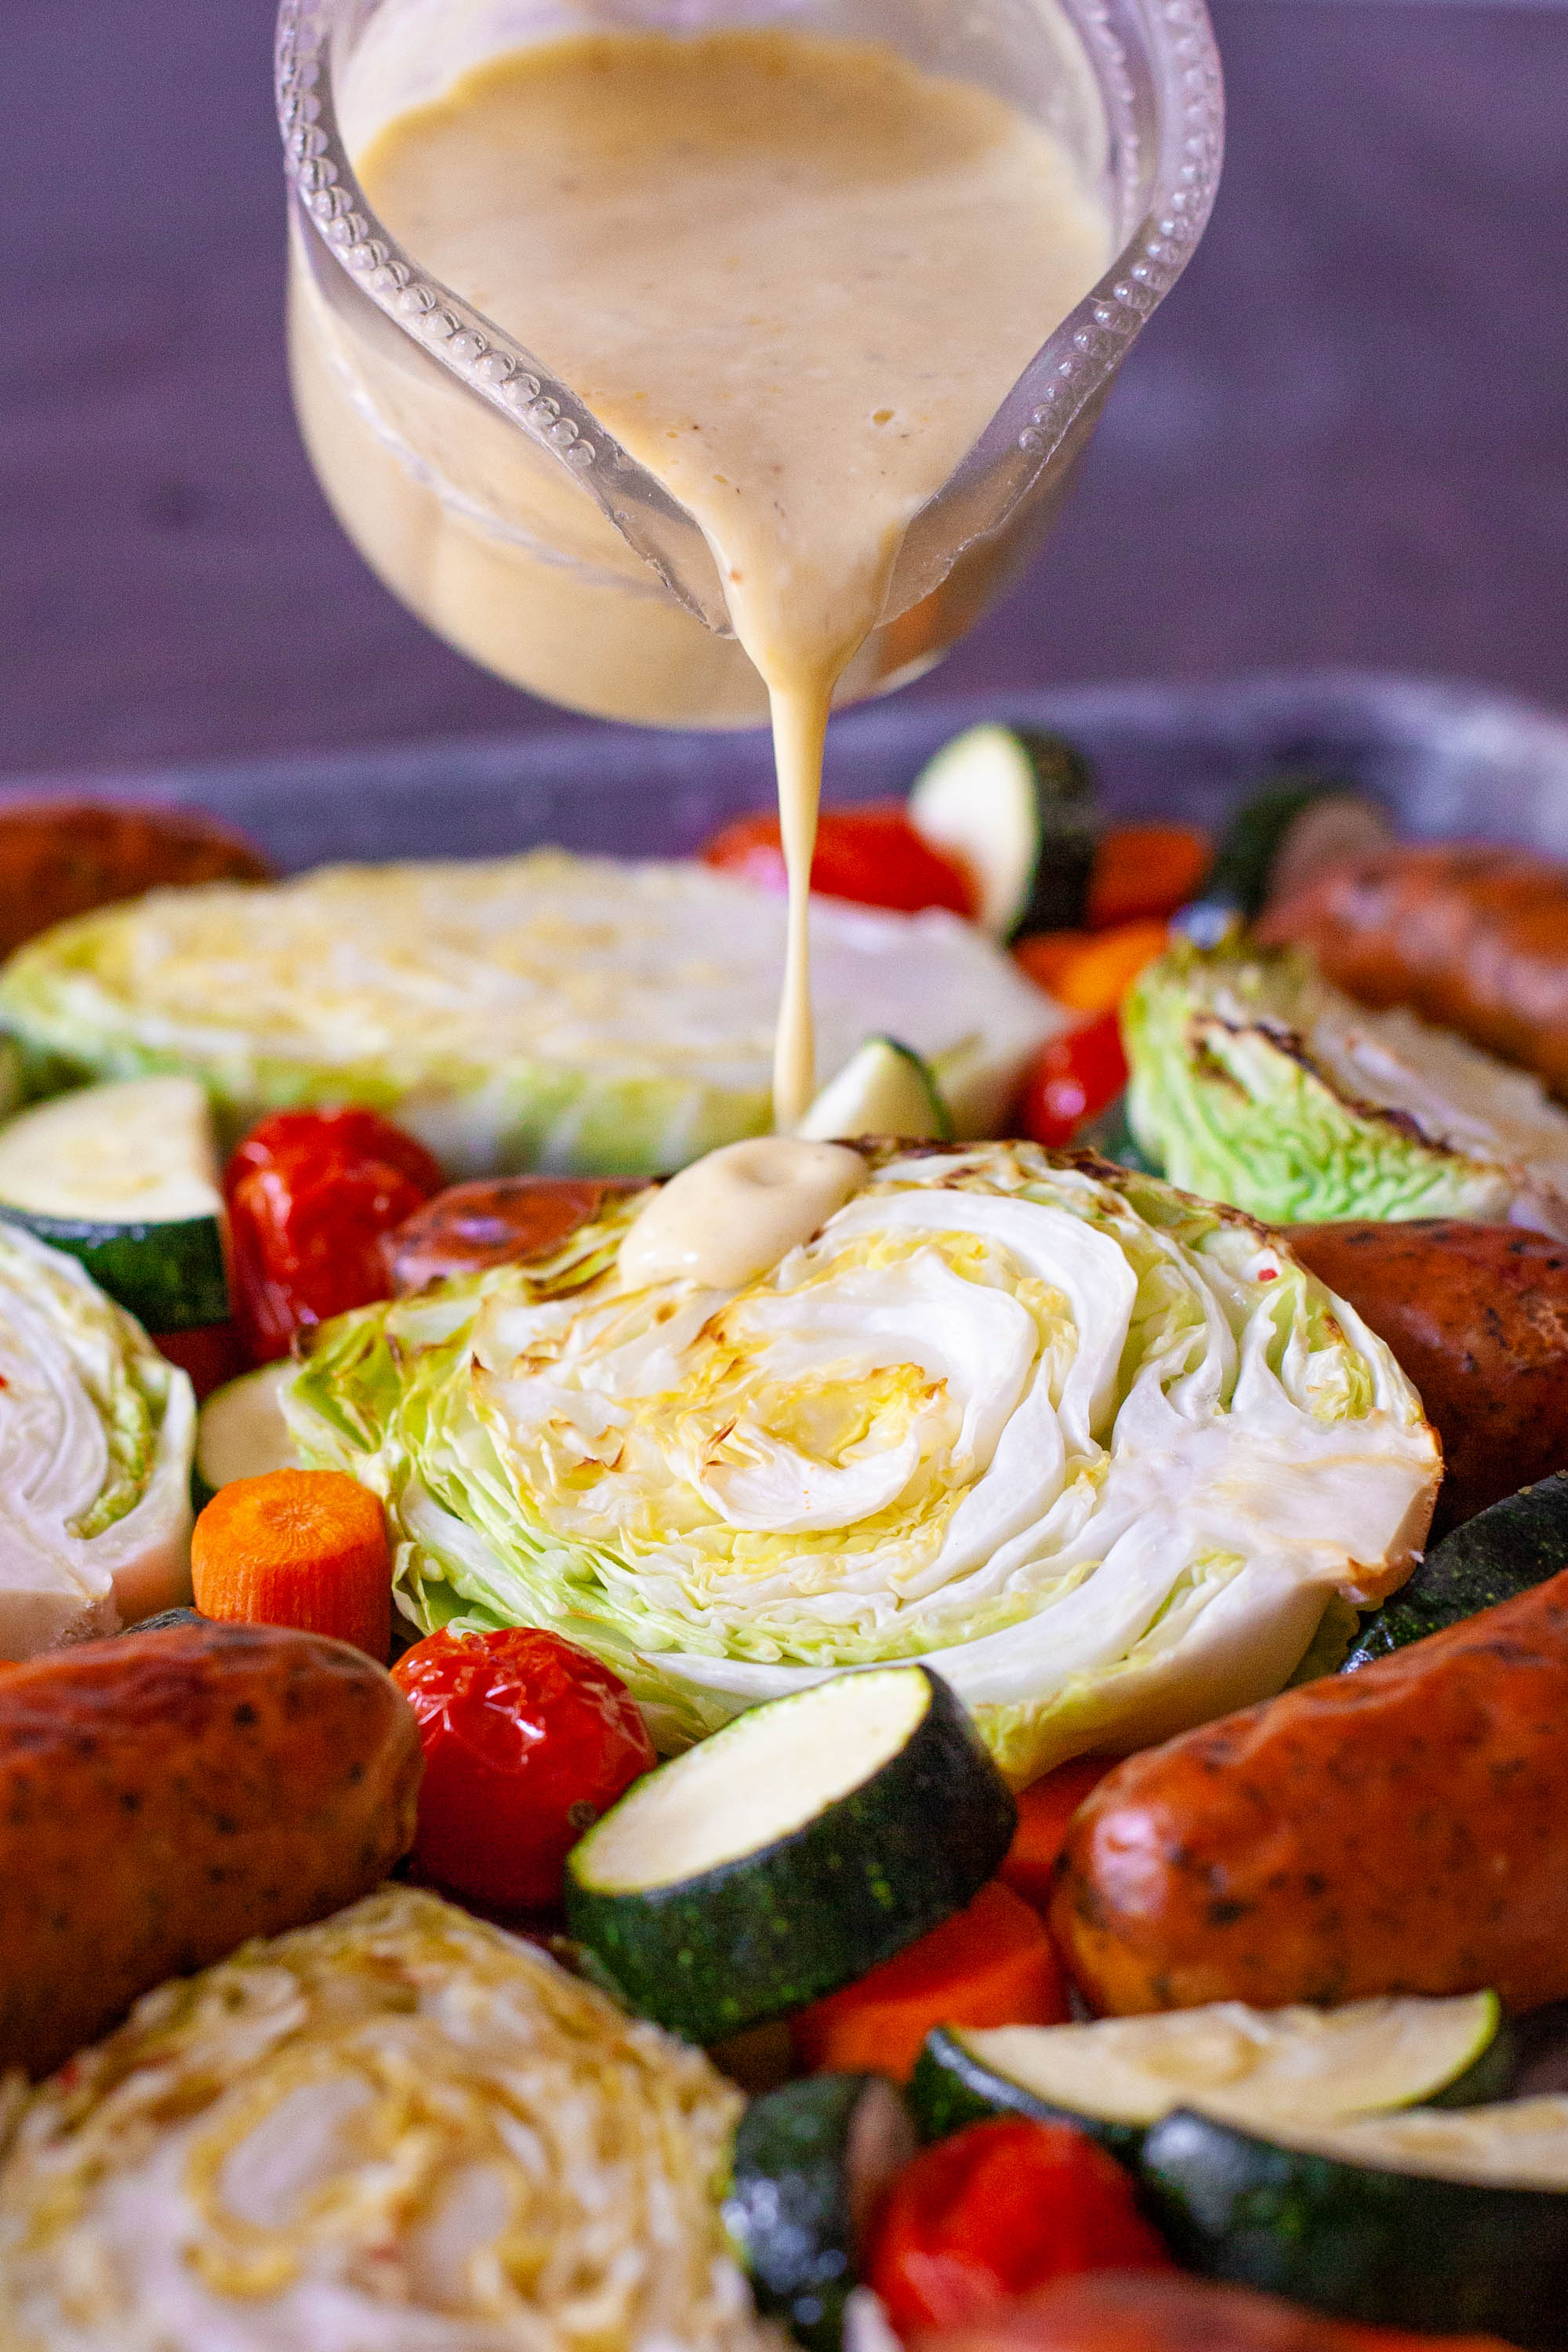 Cabbage and Sausage with Creamy Lemon Parmesan Dressing